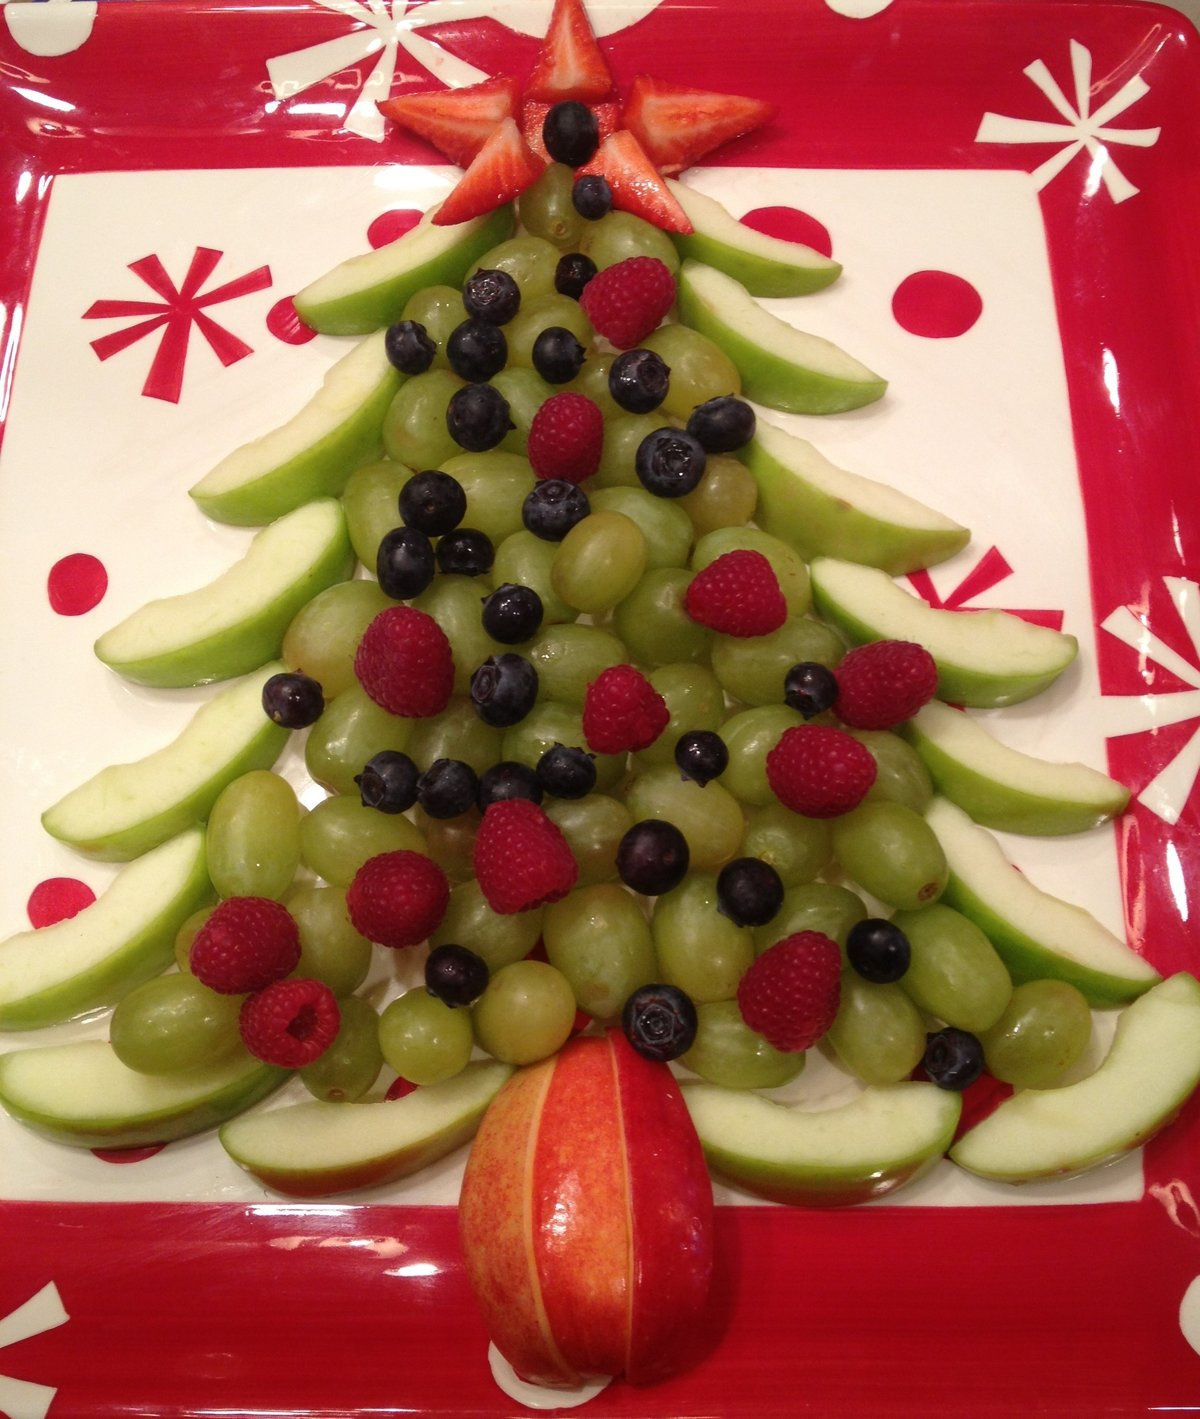 christmas tree fruit tray with grapes apples raspberries blueberries strawberries